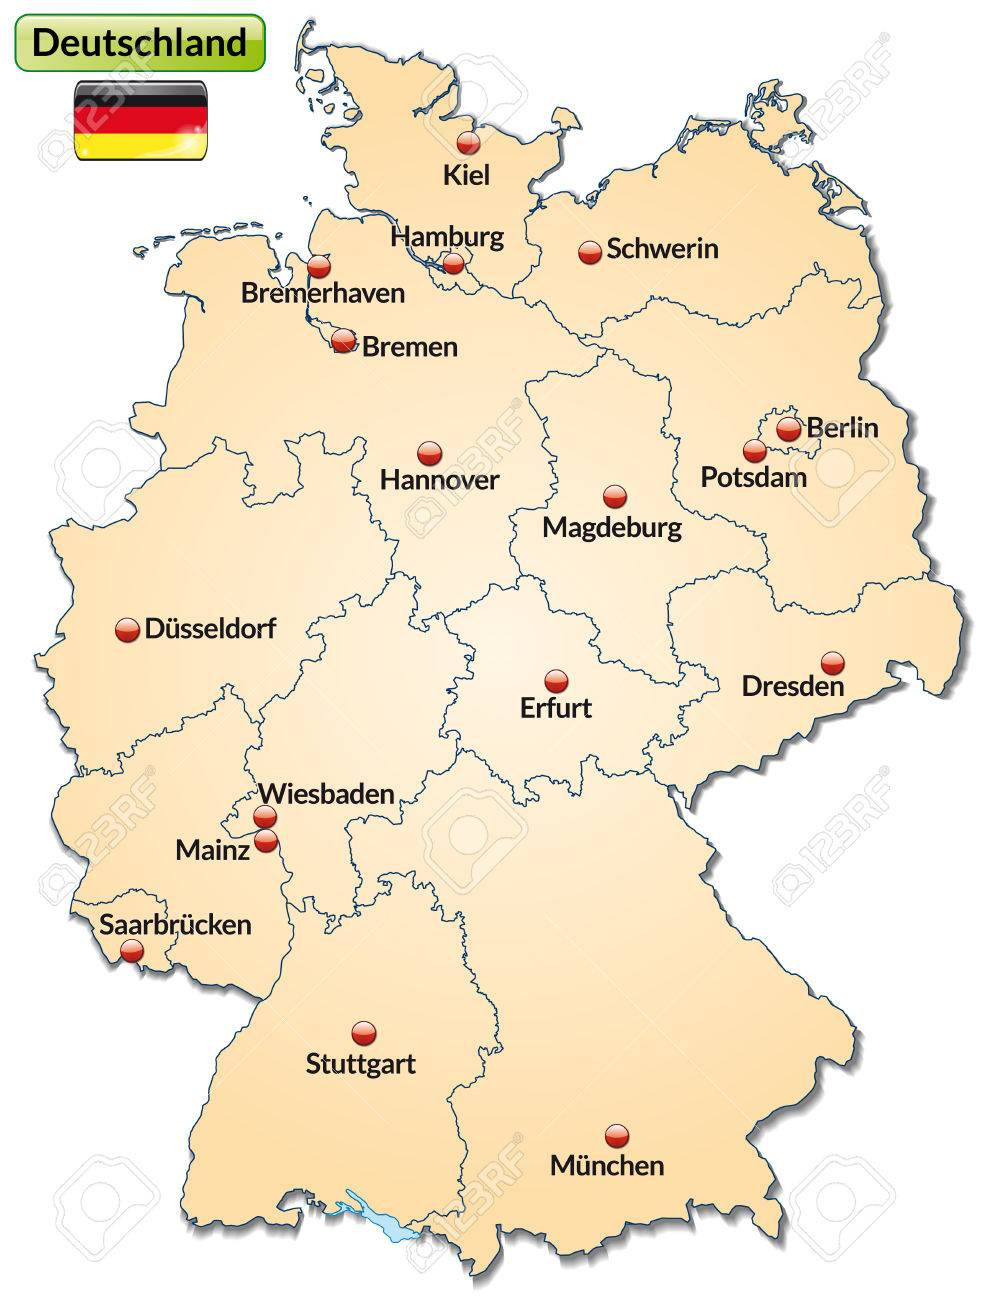 Map Of Germany With Main Cities In Pastel Orange Royalty Free - Germany map main cities